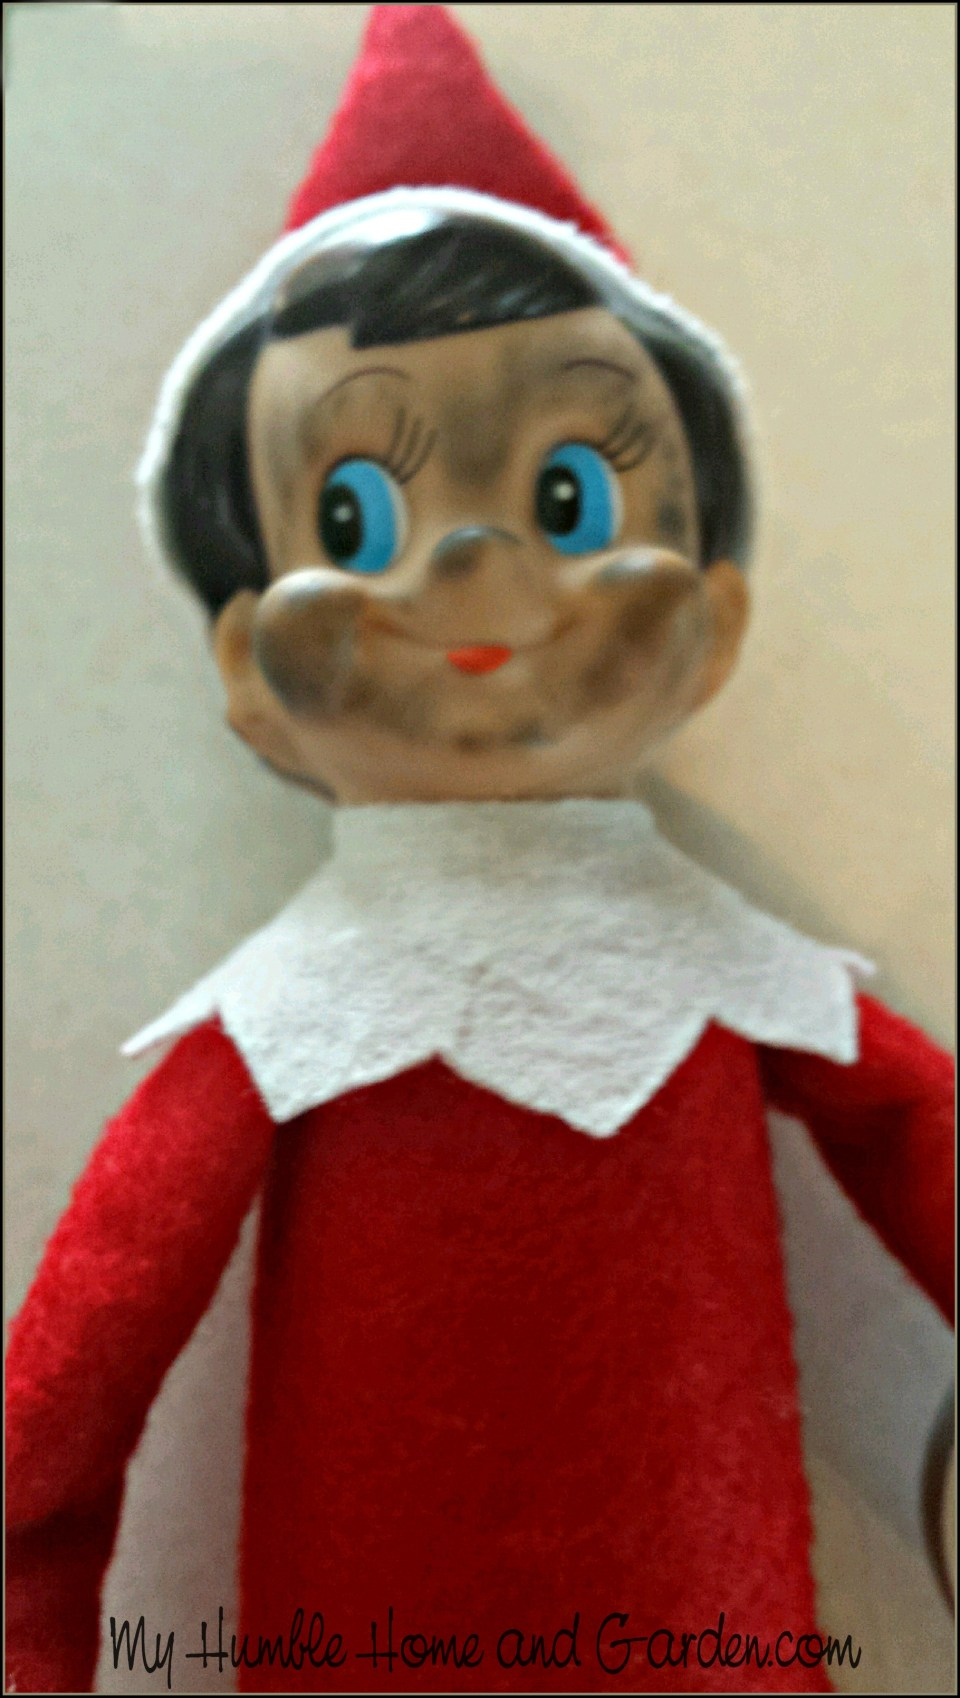 The Daring Elf On The Shelf's Explosive Arrival This Year